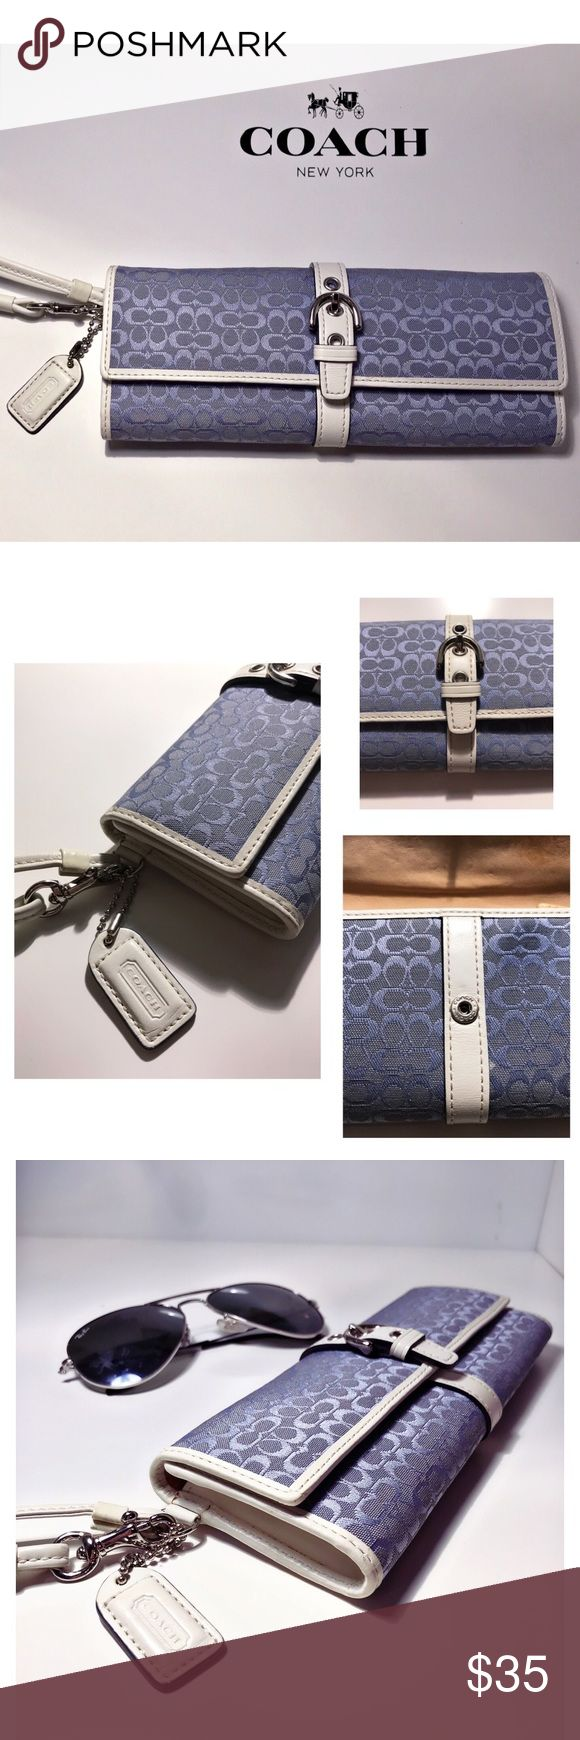 ⚡️COACH Signature C Blue and White Long Wristlet A little different than a typical Wristlet! 💁🏻♀️ It has the Signature jacquard fabric in baby blue, with white leather trim & strap. It has silver hardware & snap button closure. Inside it is light tan leather with brown lining. It has a zipper pocket & 2 regular pockets. It can carry your most important essentials! In the 4th photo you'll see there's a light pen mark, so as a BONUS I'll throw in a Coach coin purse! 😃 It's tan with silver…